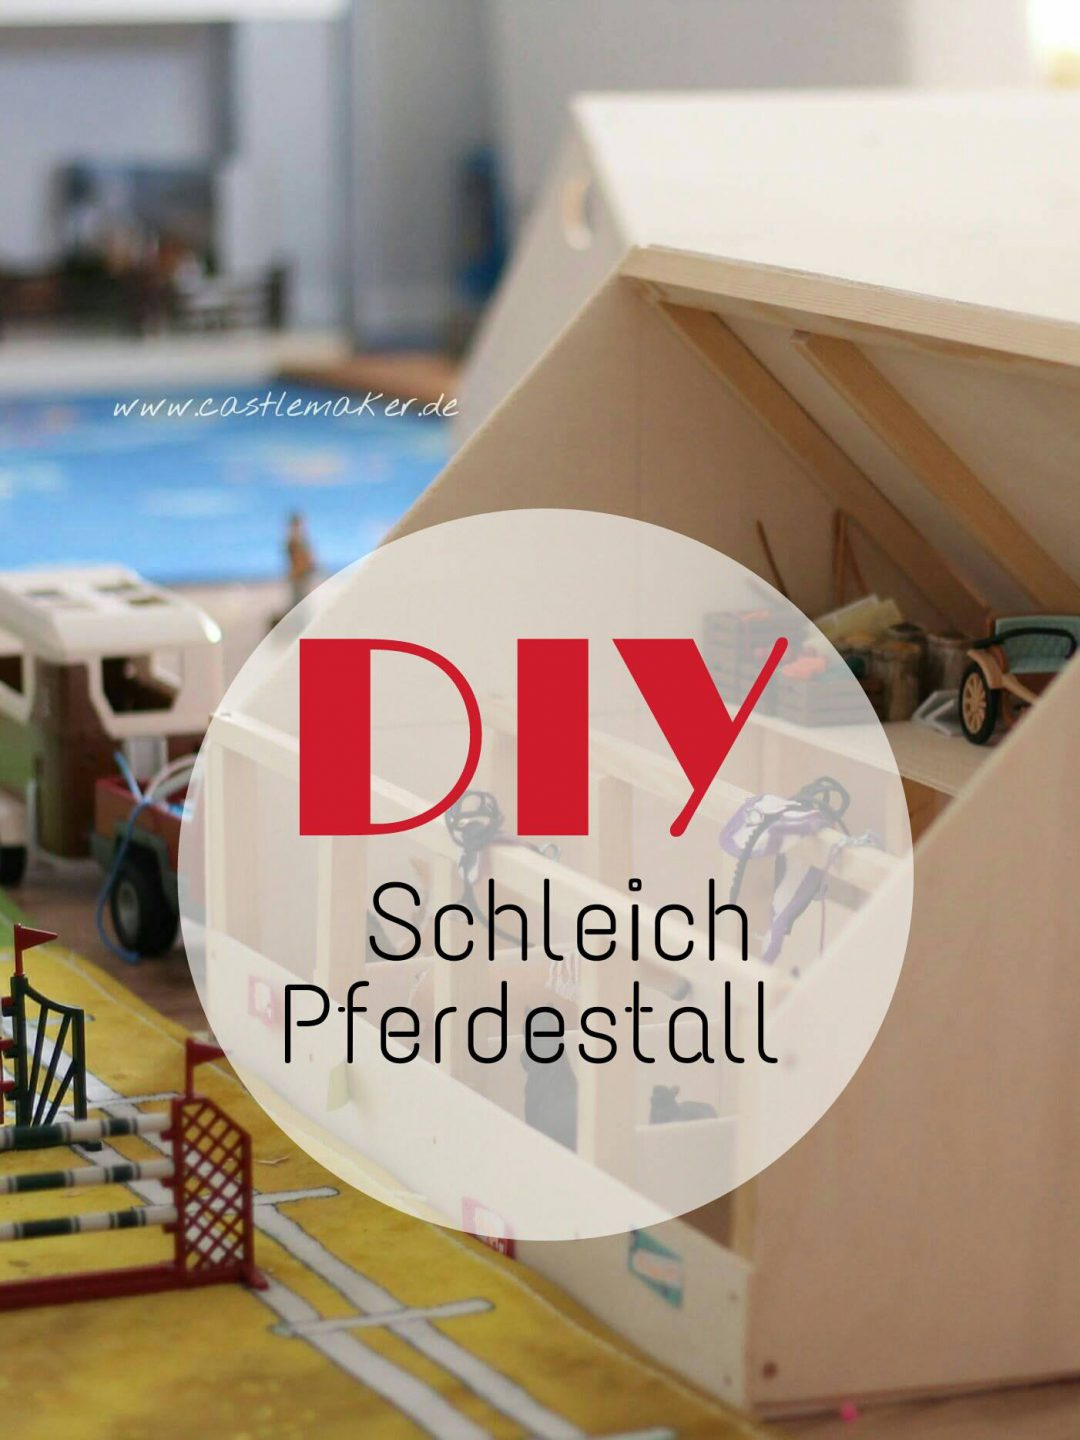 castlemaker lifestyle blog diy wir bauen einen schleich. Black Bedroom Furniture Sets. Home Design Ideas